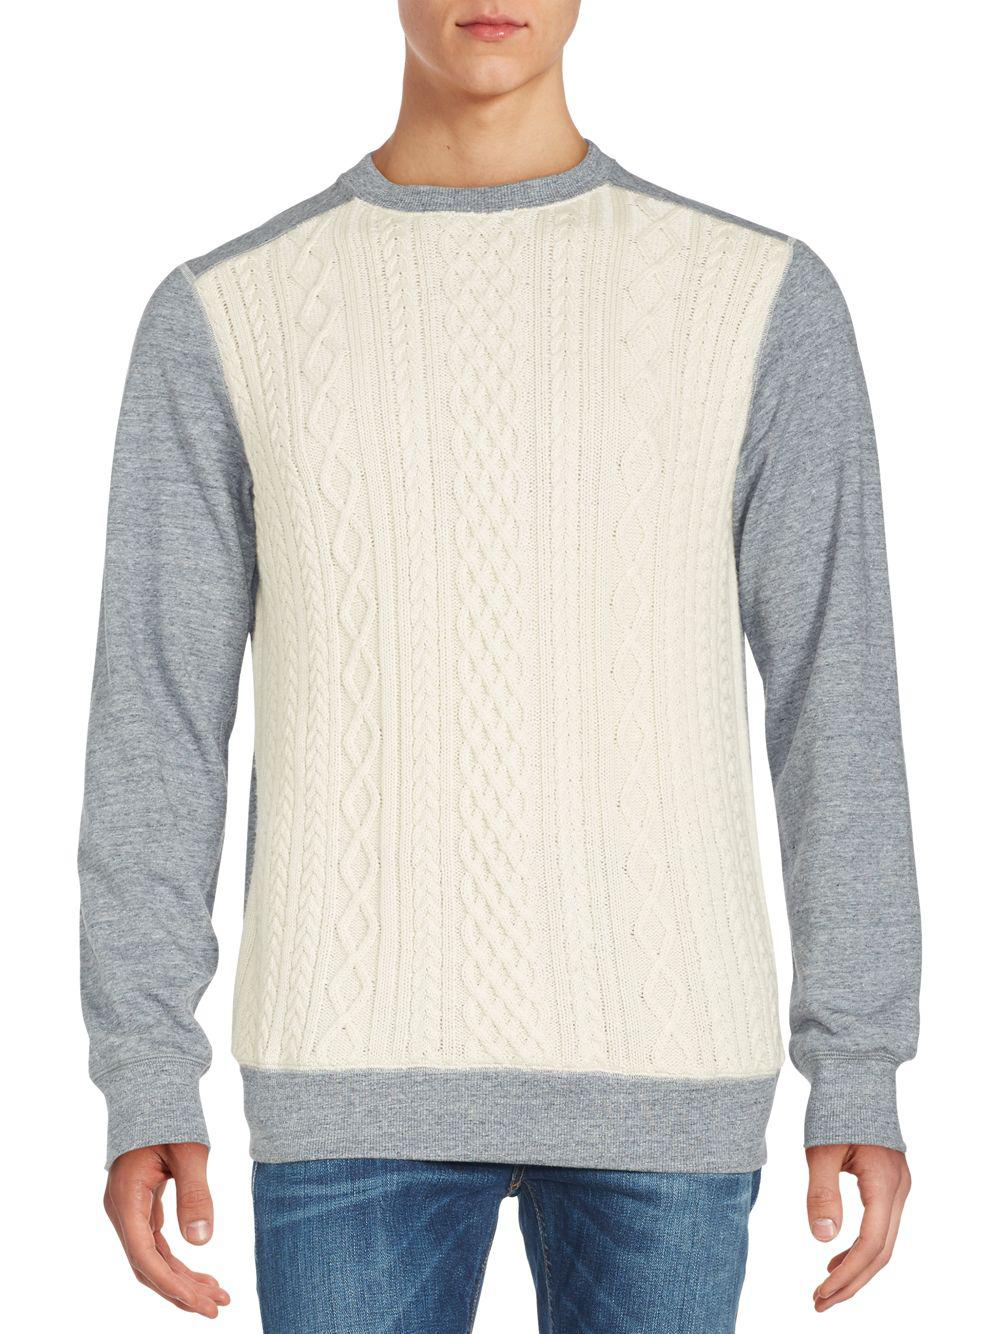 Robert graham Cable-knit Front Merino Wool Sweater in Gray for Men ...